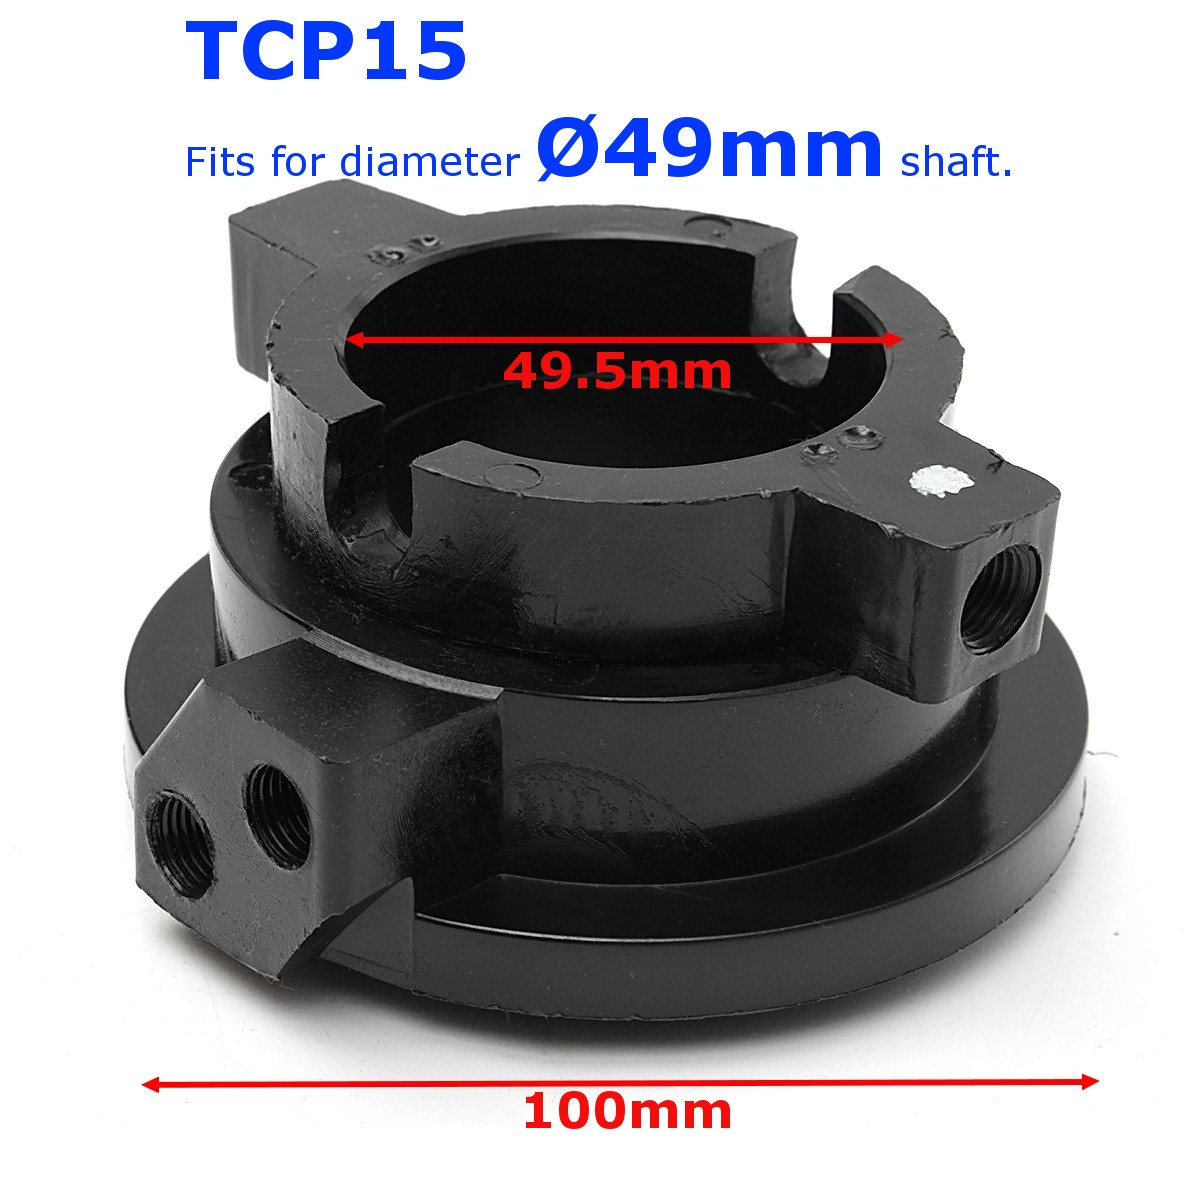 Vehicle Car Wheel Tyre Tire Changer Rotary Coupler Coupling Air Valve TCP15 30mm installation size plastic demounting head with metal flange tyre changer accessory tyre changer tool head